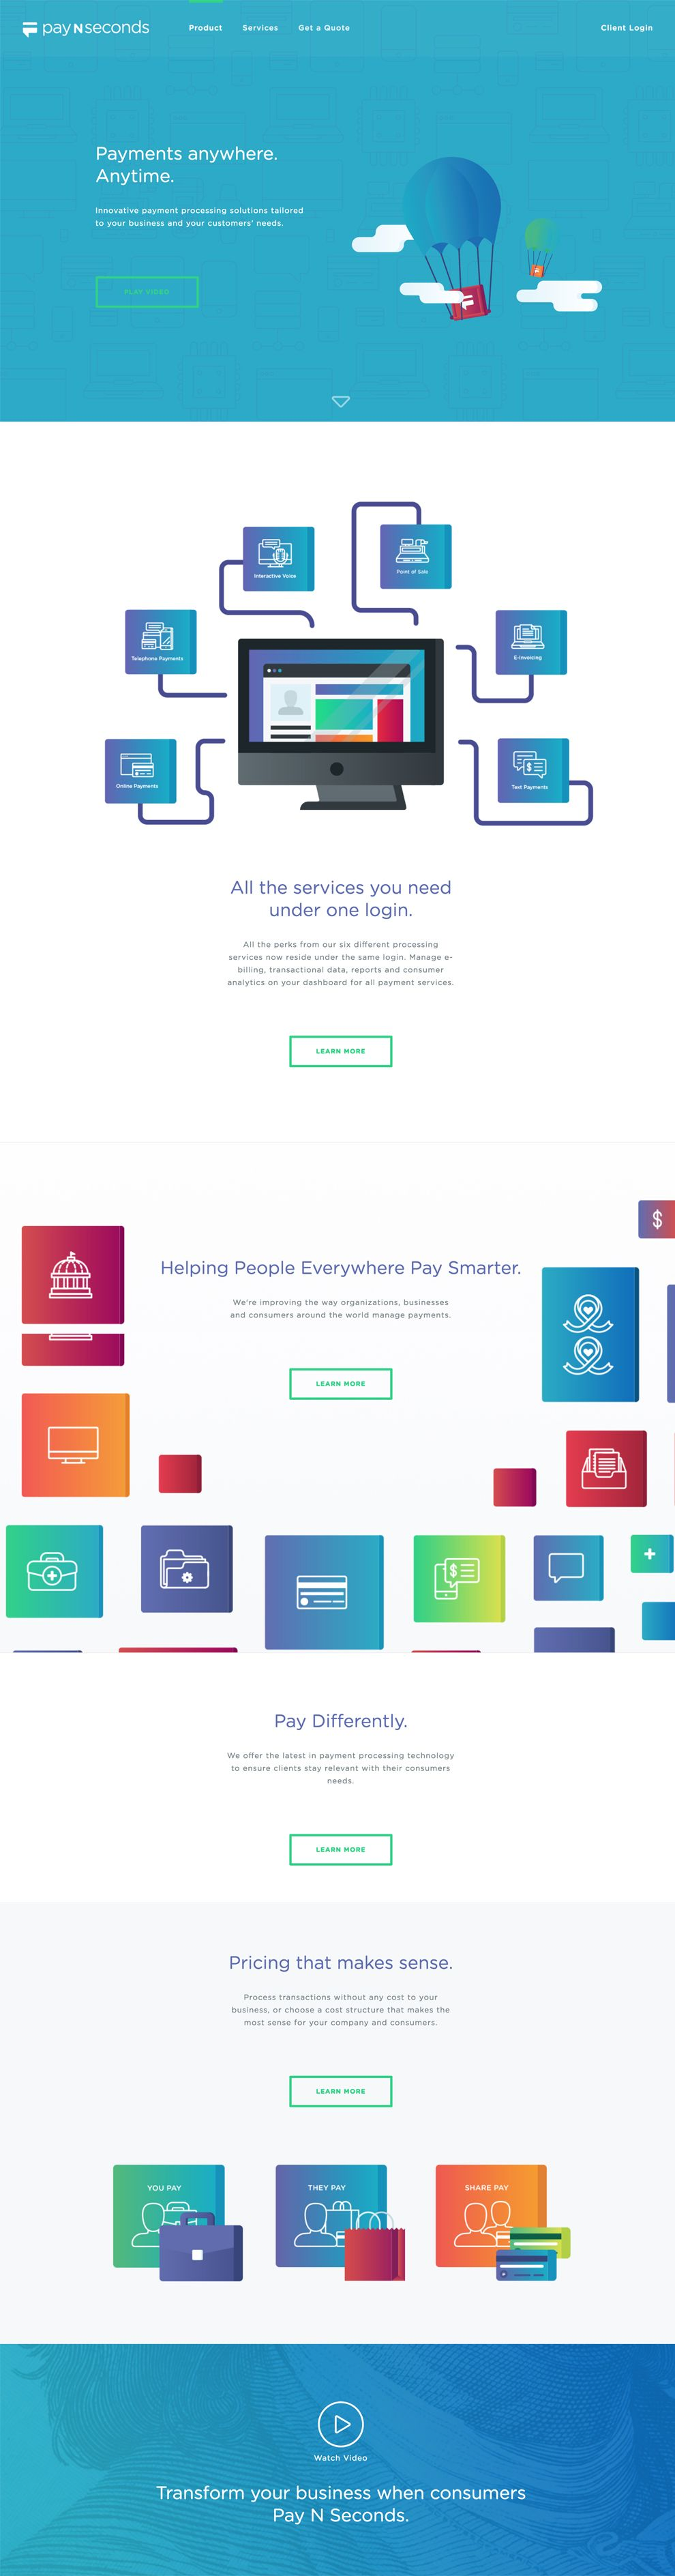 Pay N Seconds Creative Homepage